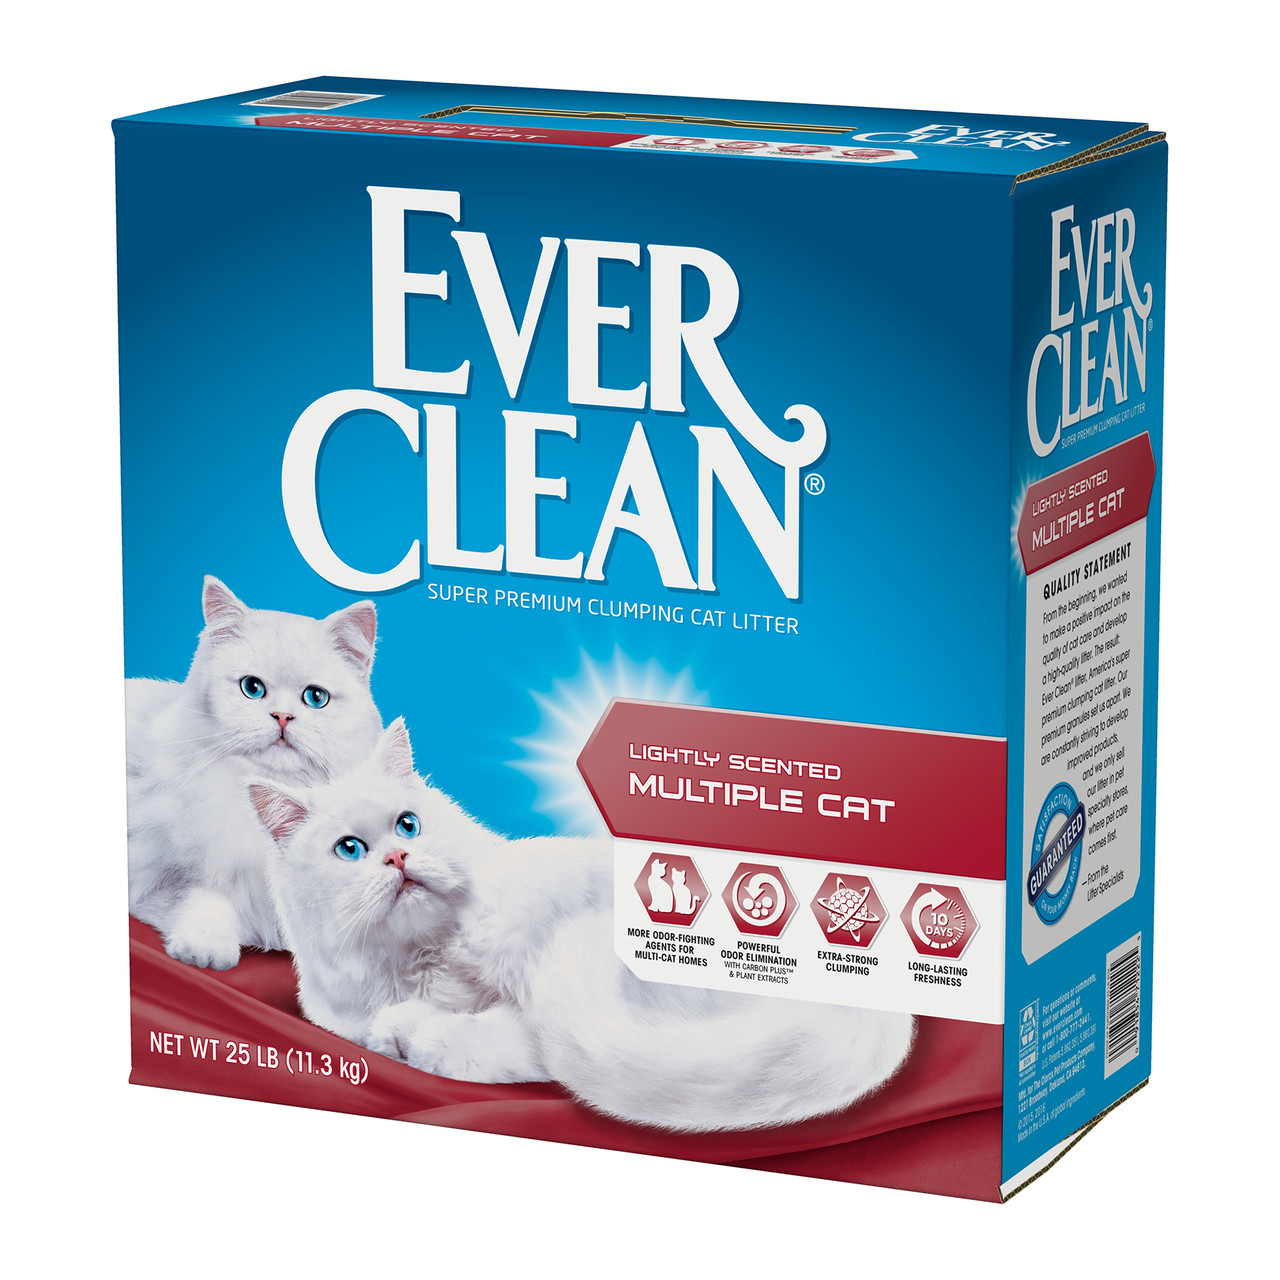 Ever Clean Lightly-Scented Multiple Cat Litter